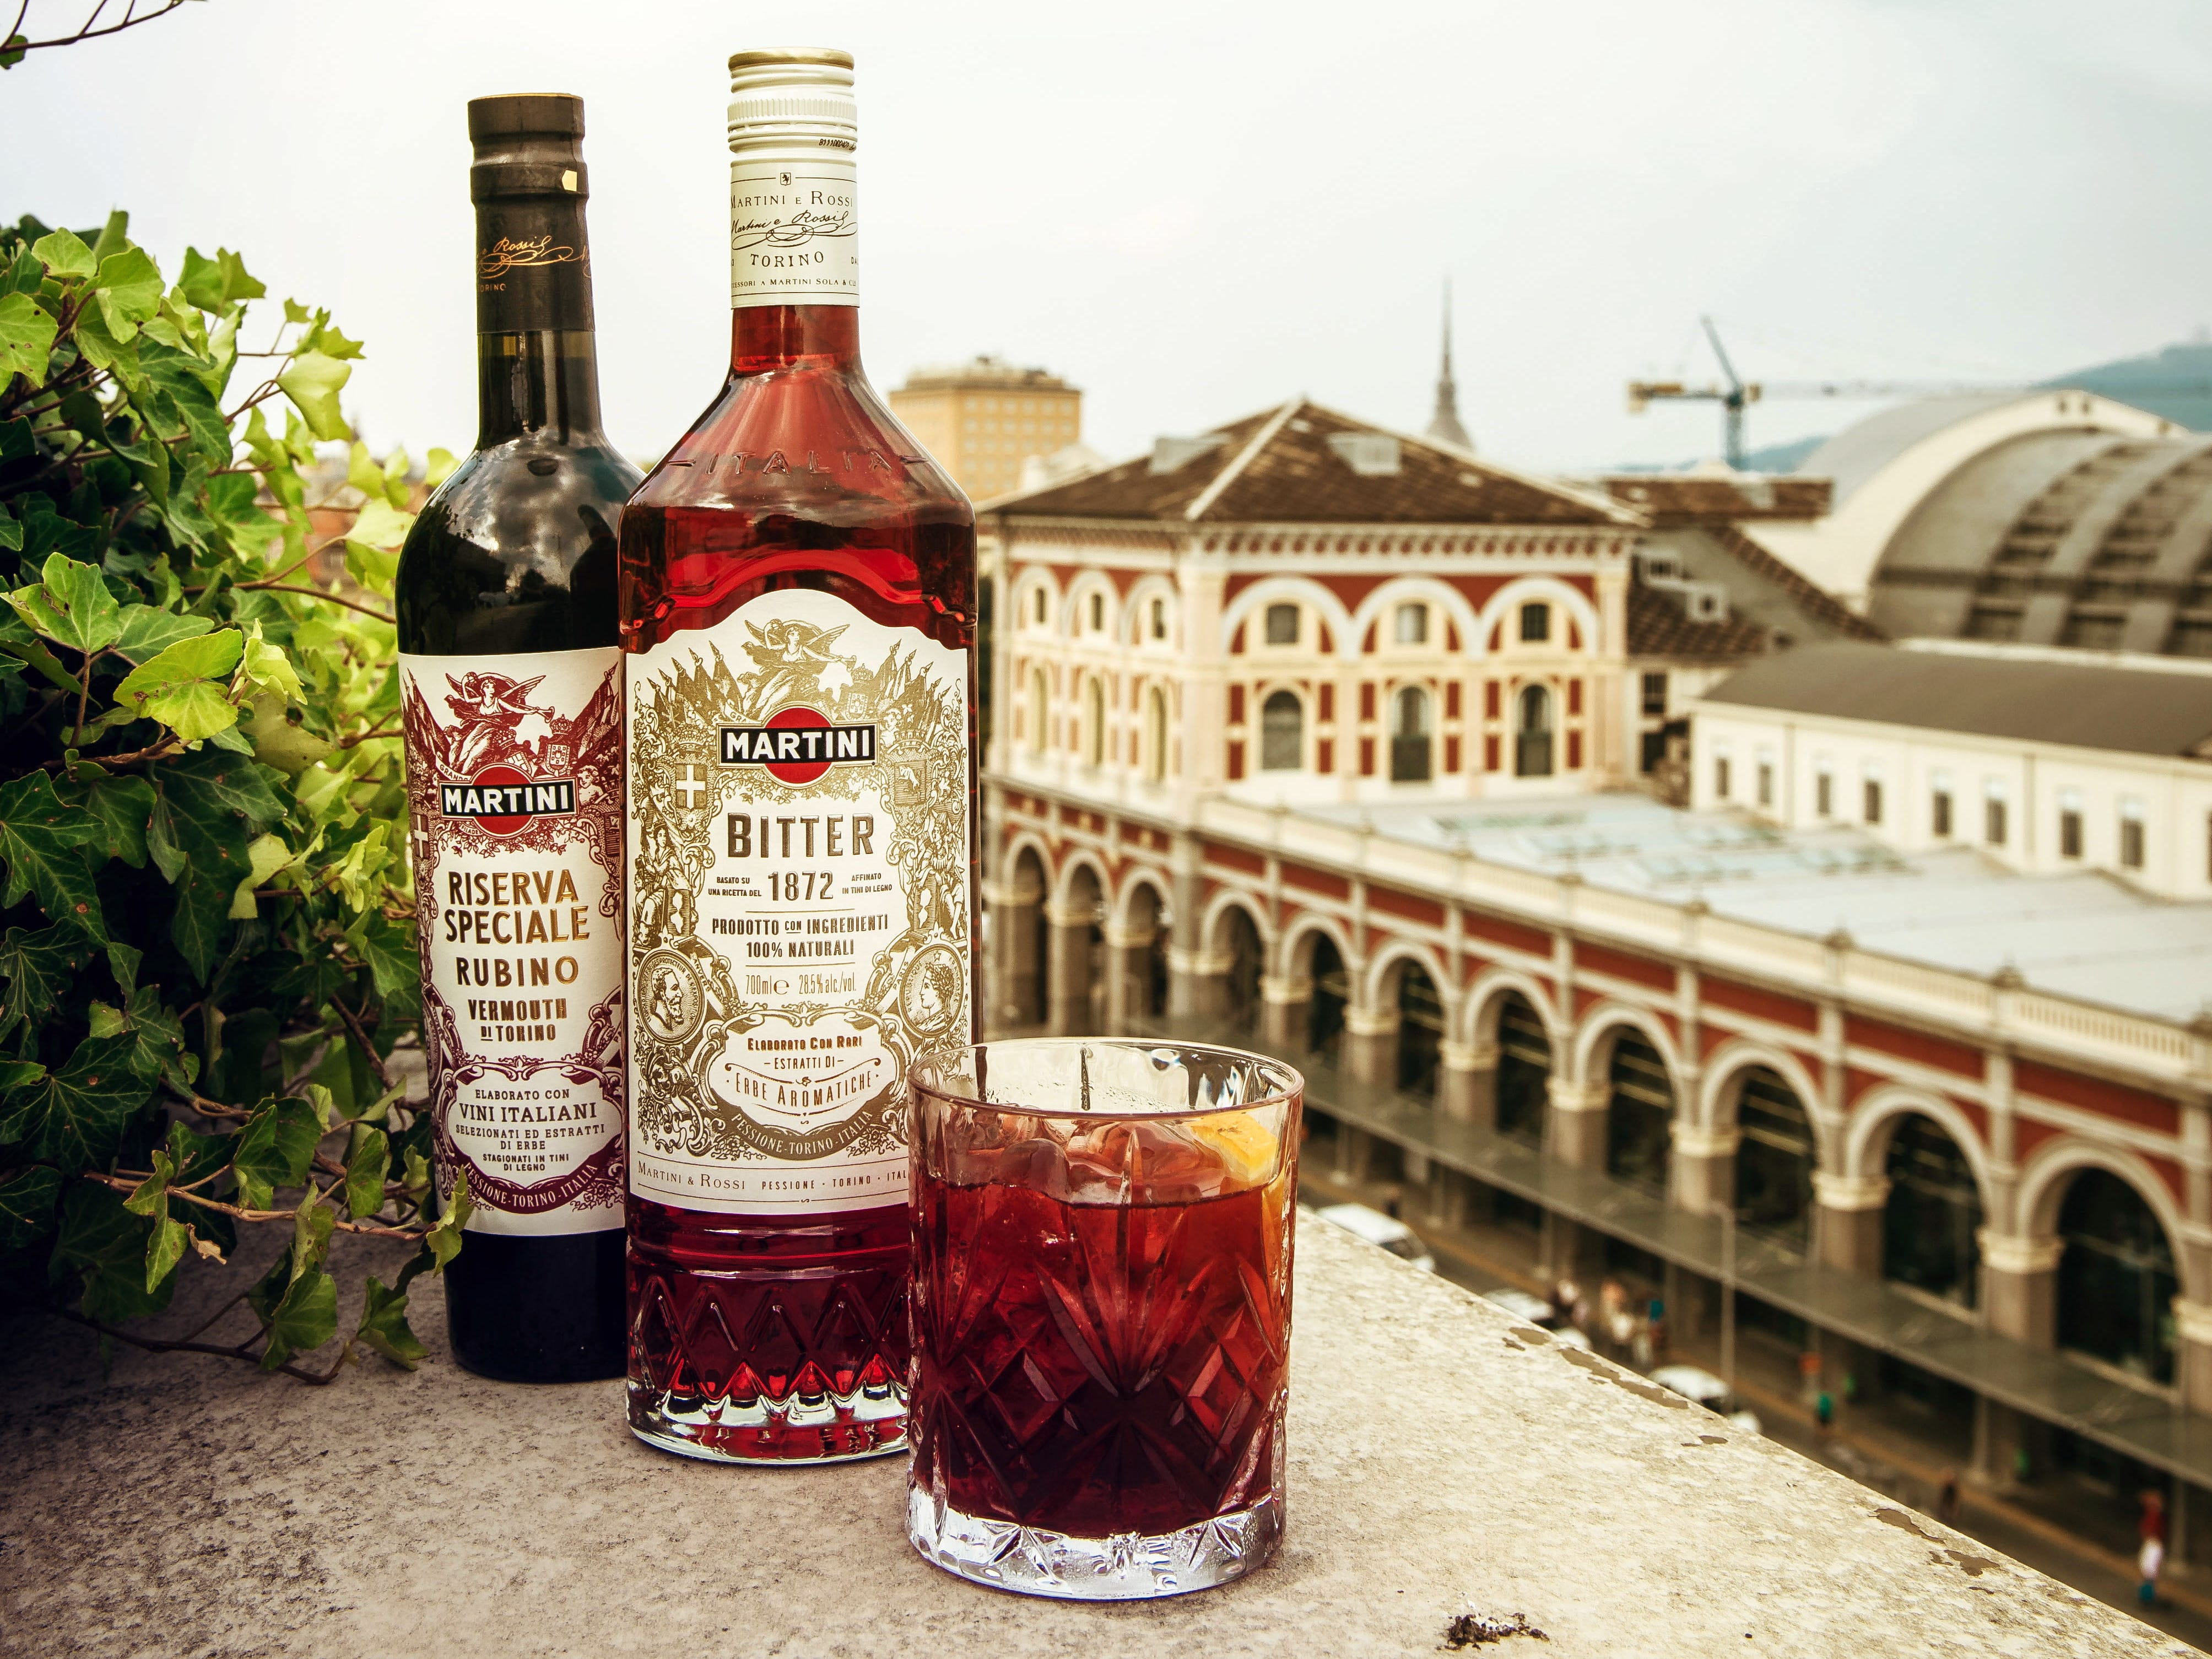 Riserva Speciale Rubino vermouth and Martini Bitter can be used in tandem in a range of cocktails, including Negronis and Americanos, which replace the gin with a topper of soda. Or try a Torino-Torino, a 50-50 split of Rubino and Bitter with a citrus peel garnish.